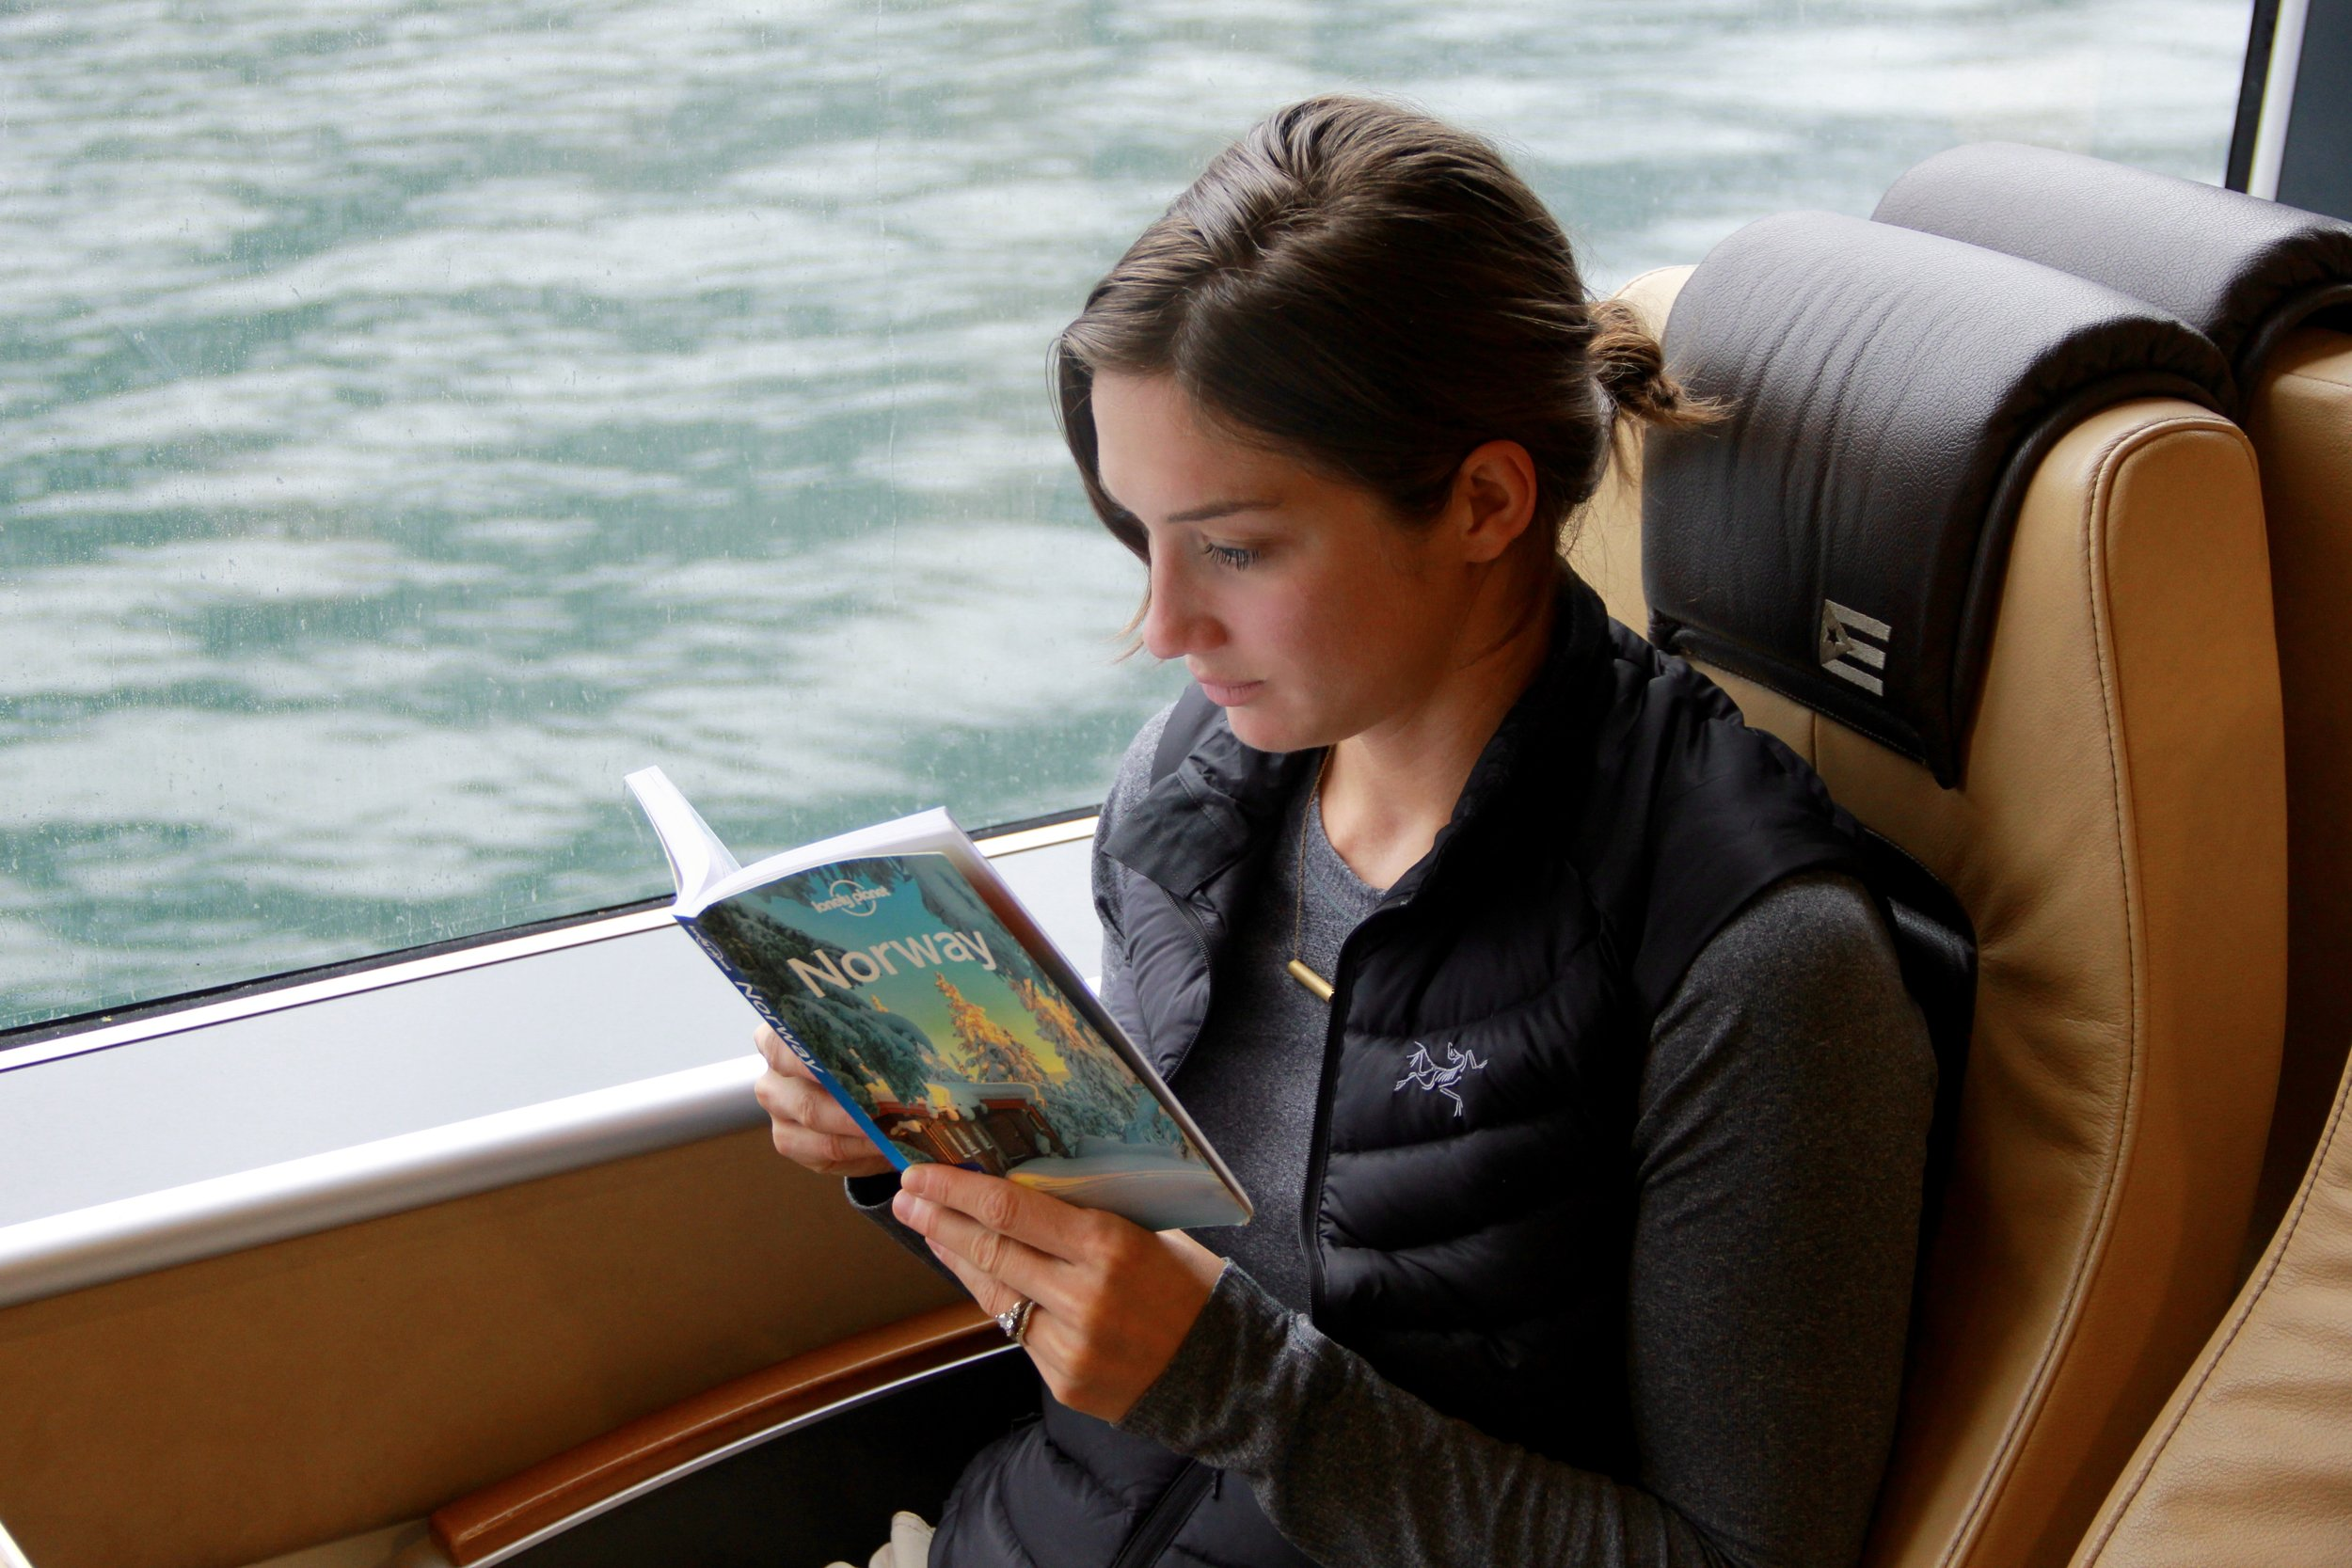 Okay, so I'm reading a book and not on my phone, but free wi-fi on the ferry meant that any place I found in the book could easily be researched on my phone afterwards.